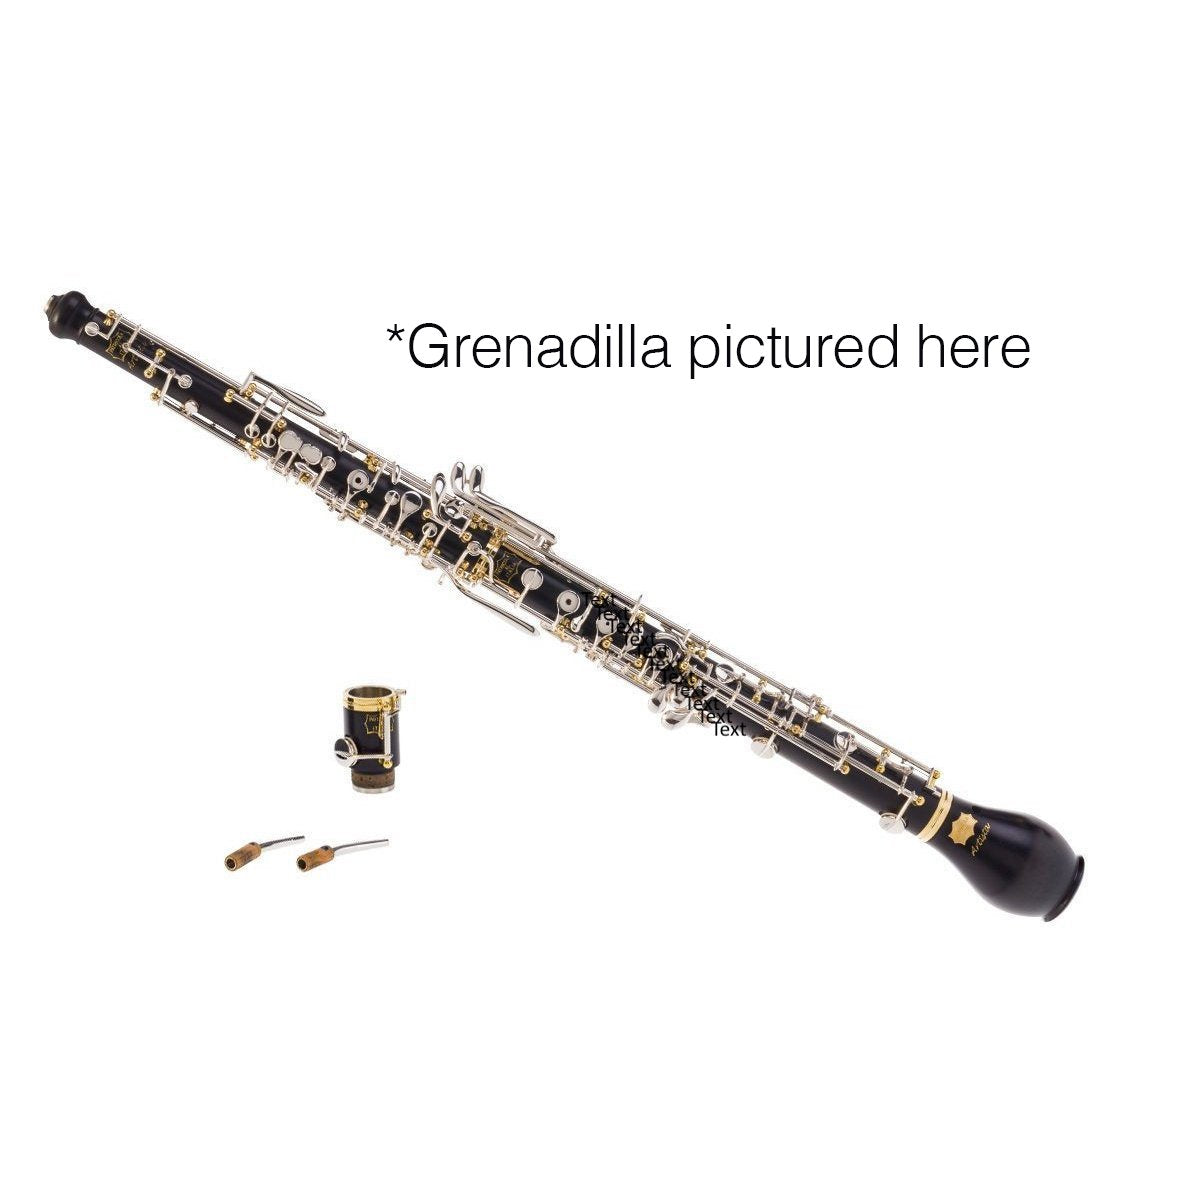 Patricola - Artista 4.0 PT.A2 Full-Automatic Oboe Amore (Rosewood with Silver-Plated Keys)